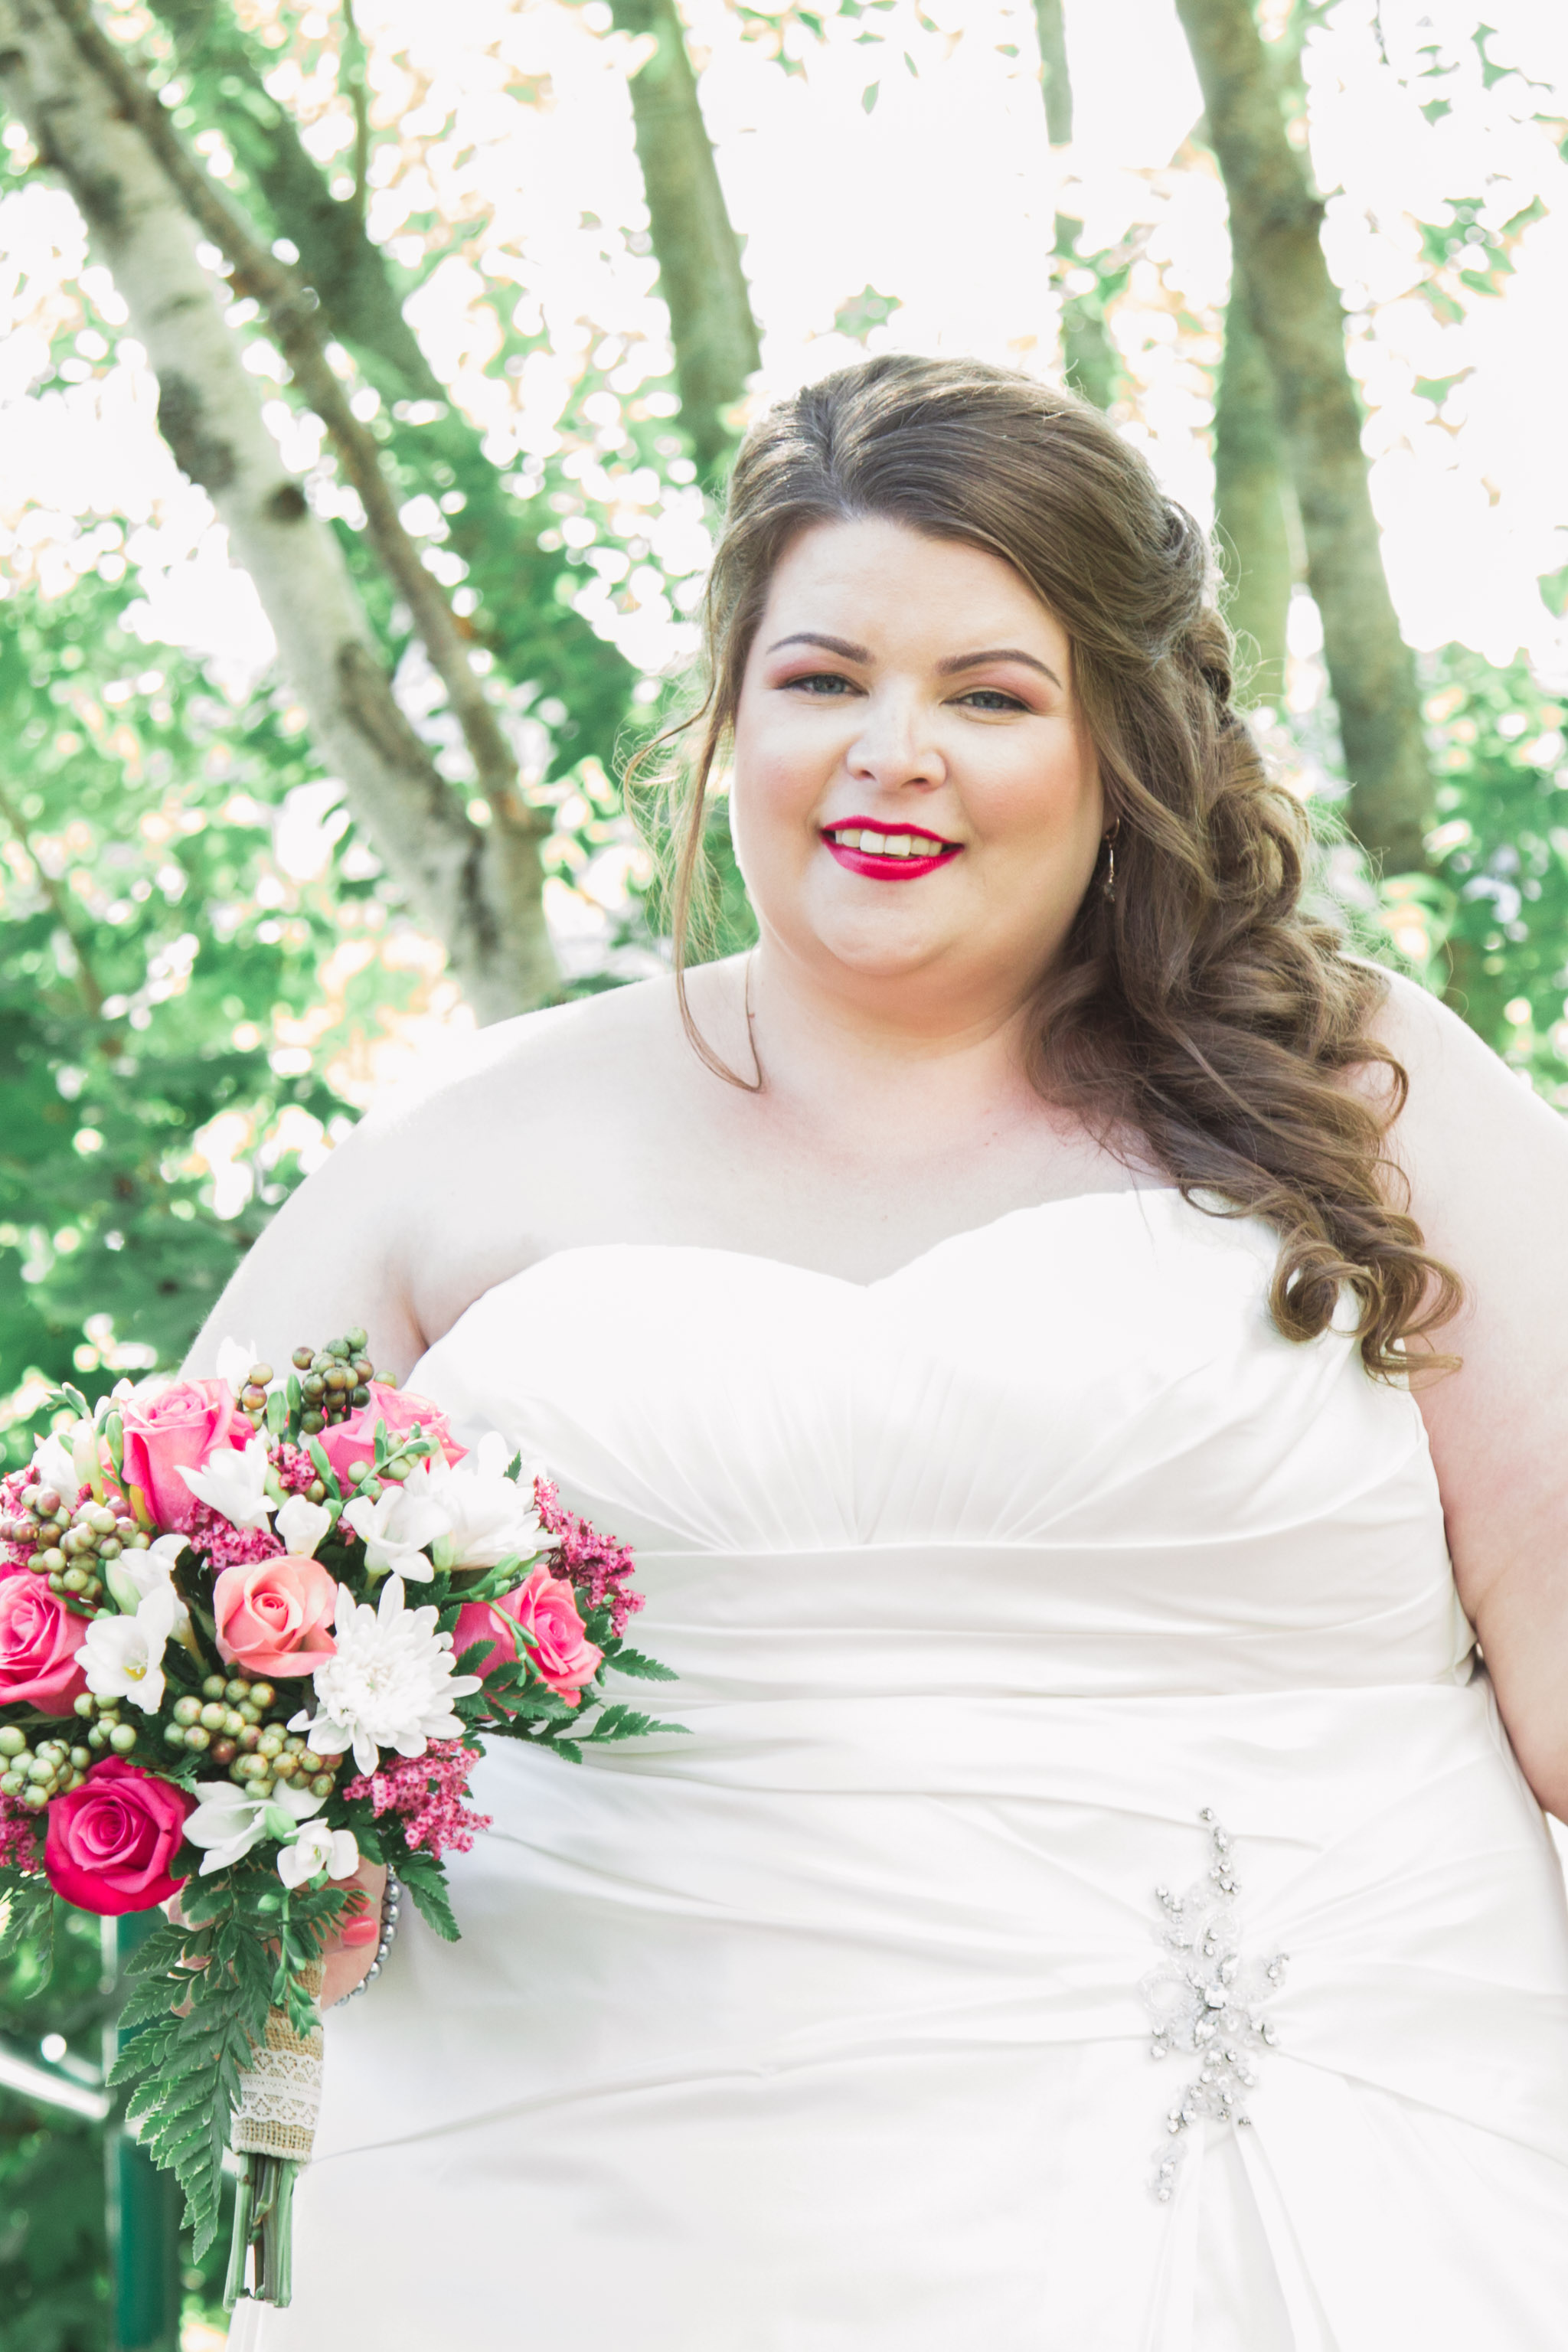 Image of bride smiling for photographer